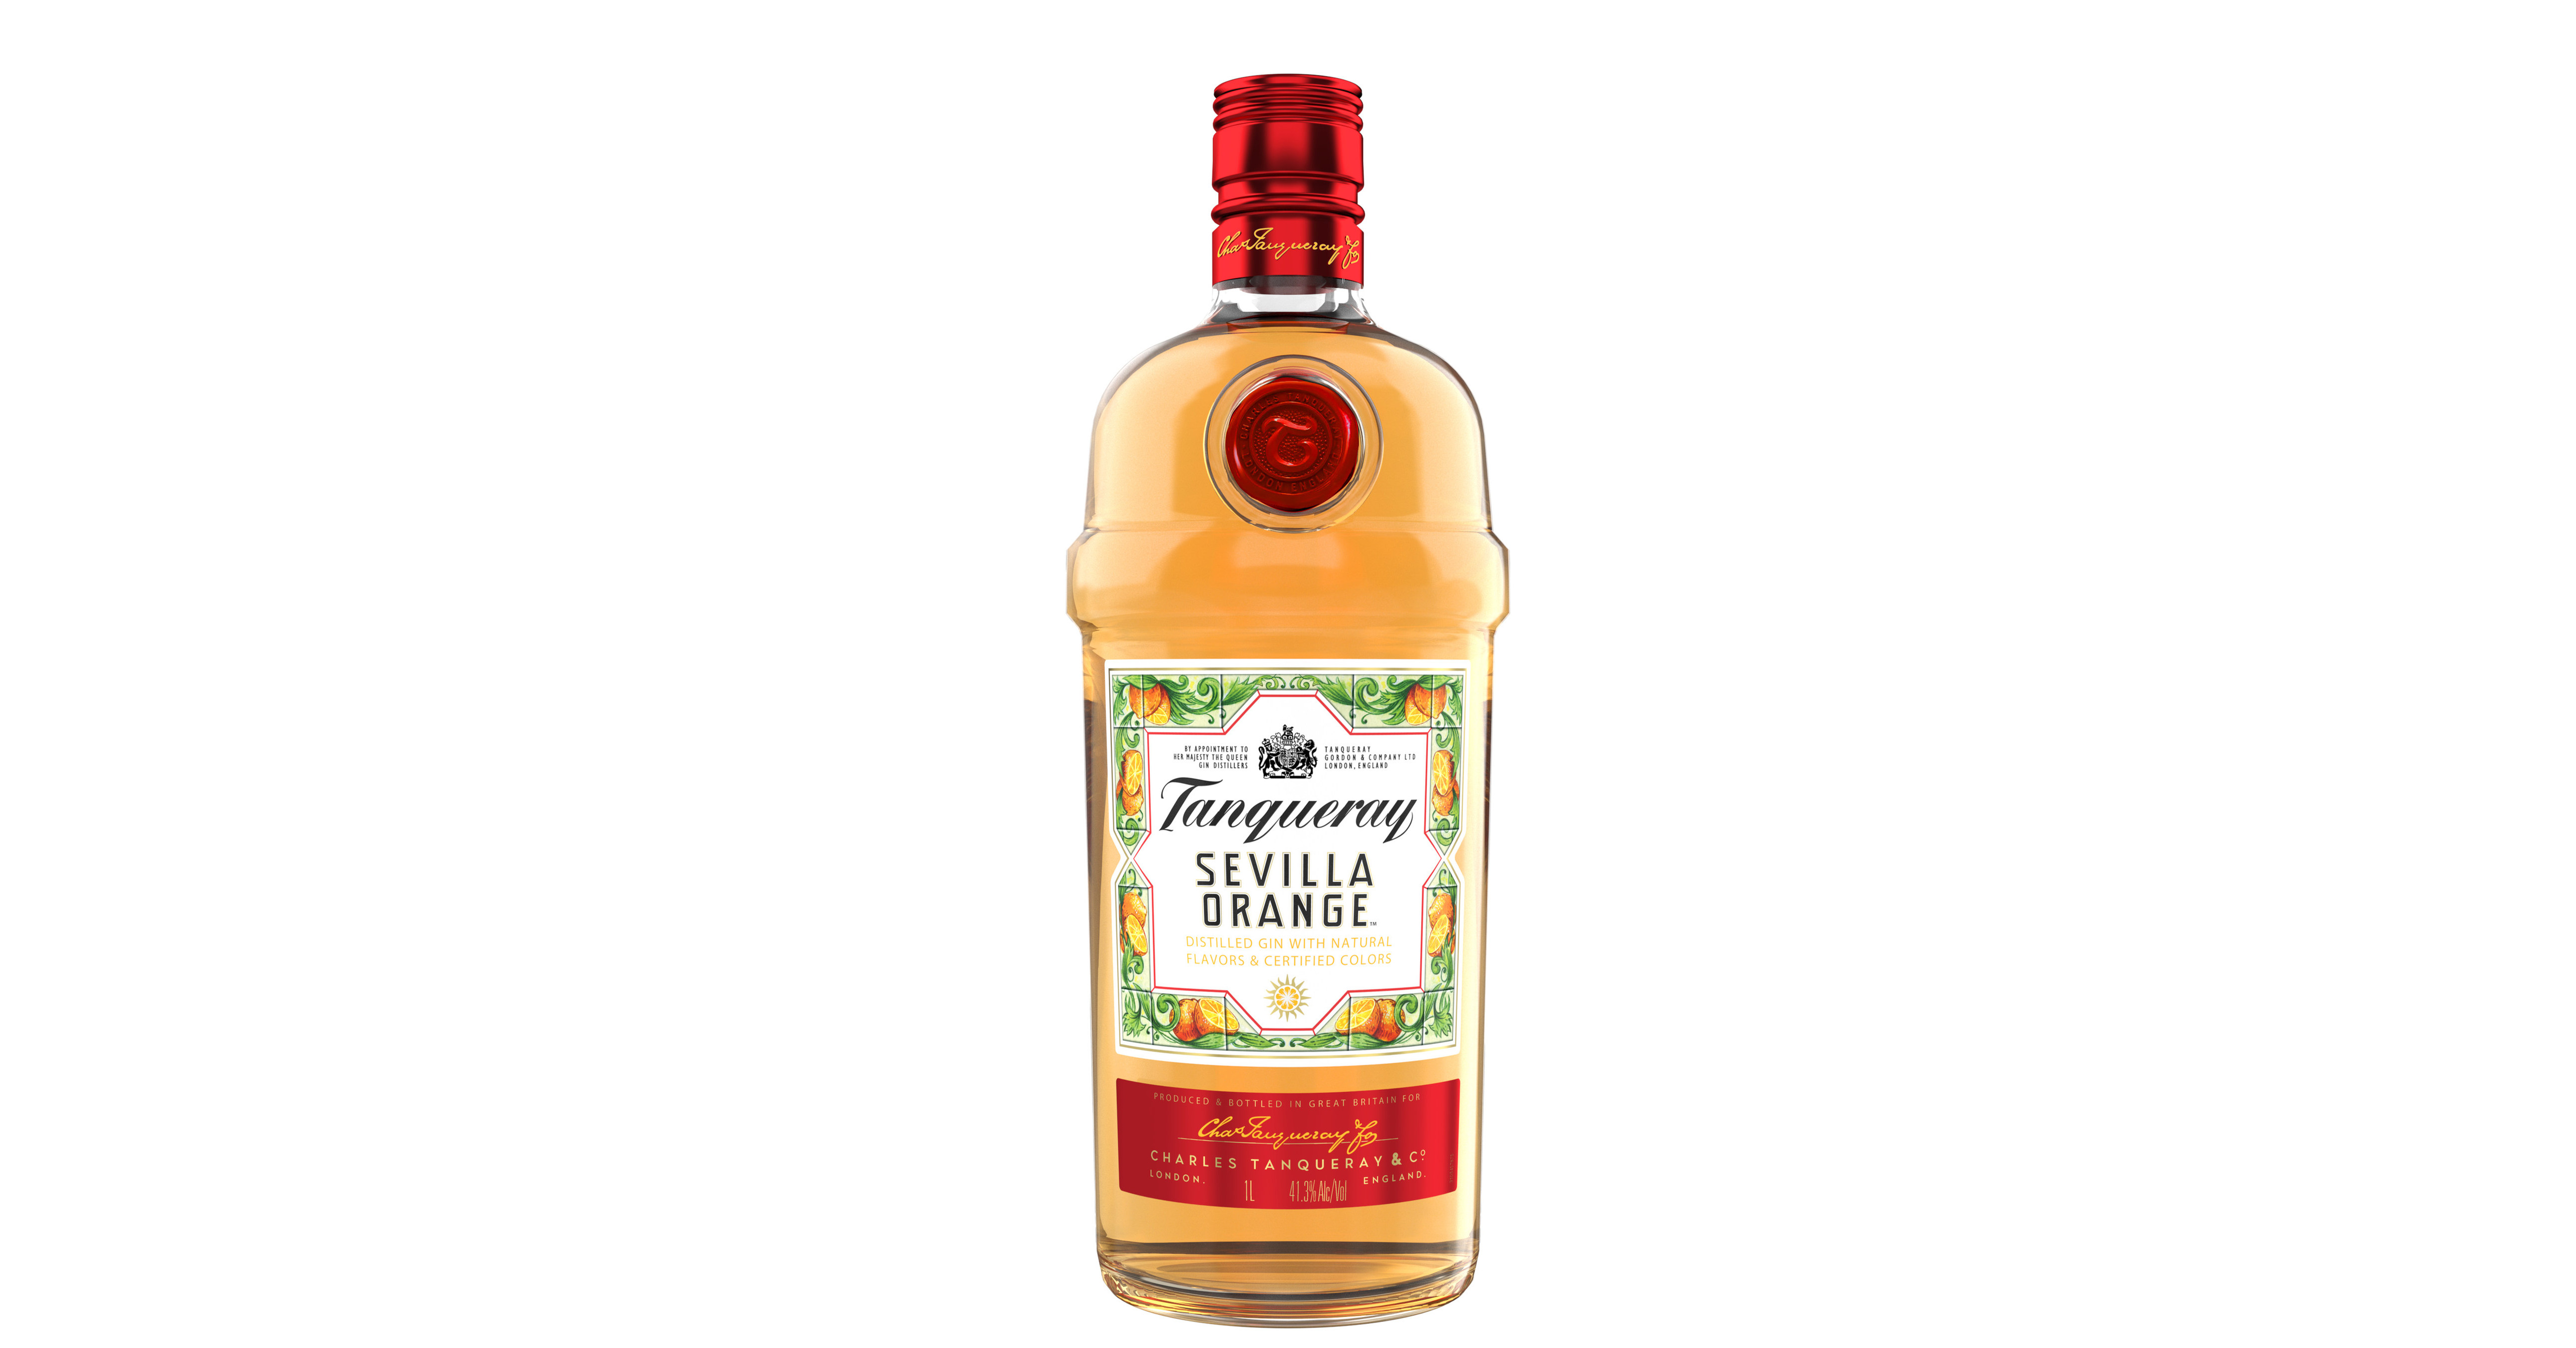 Florida Has A New Orange: Tanqueray Announces The Release Of New Flavor Tanqueray Sevilla Orange photo